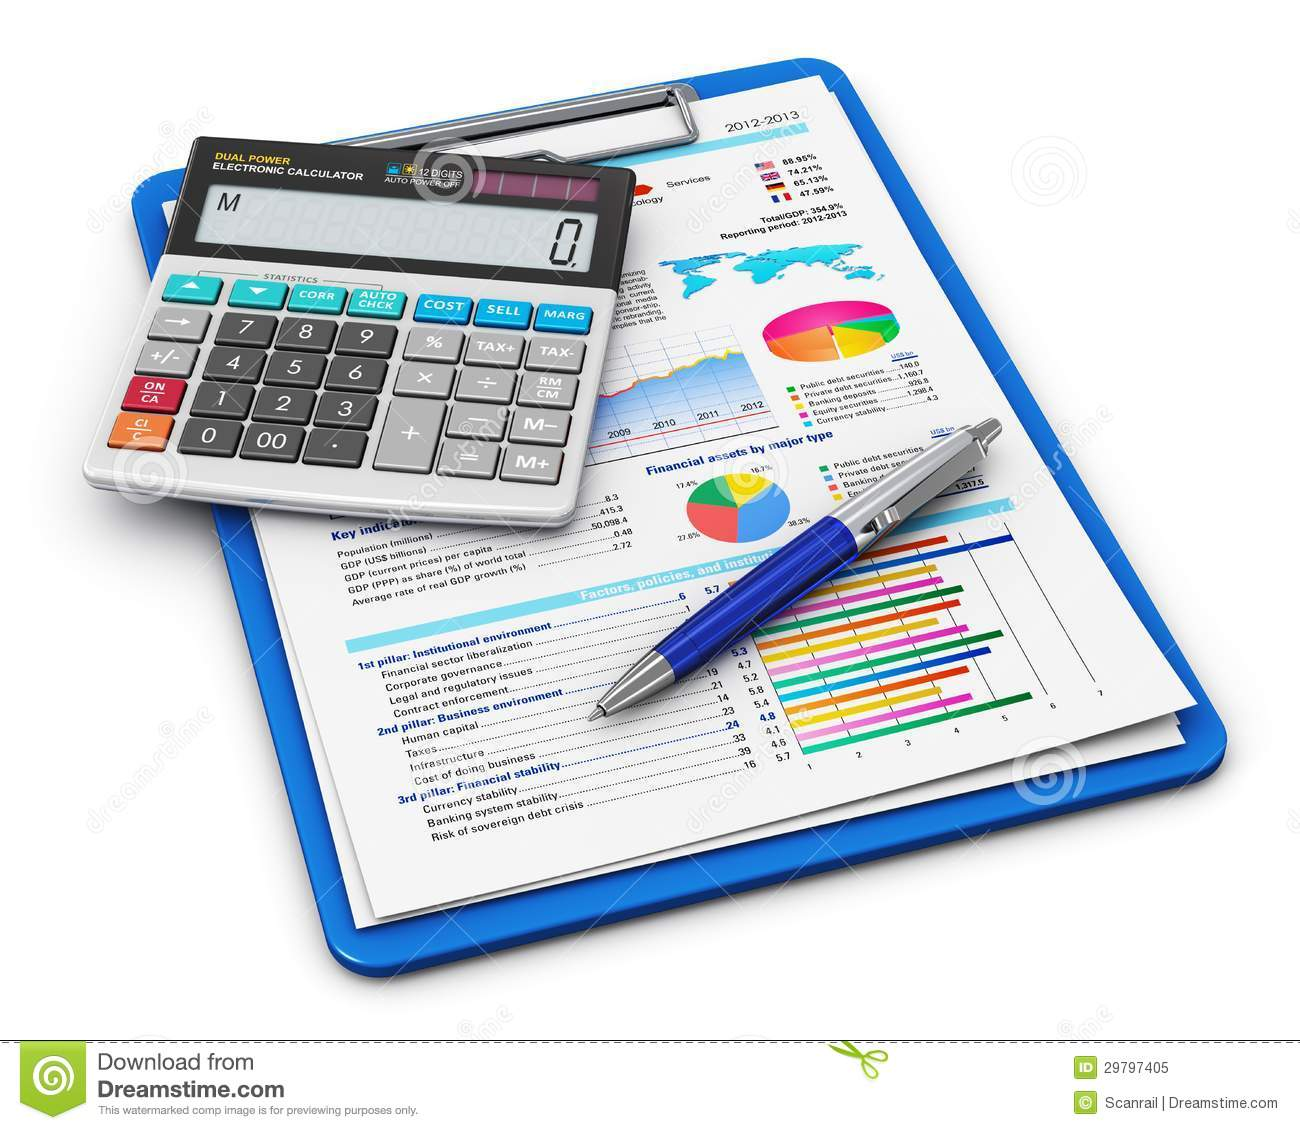 495 Accounting free clipart.